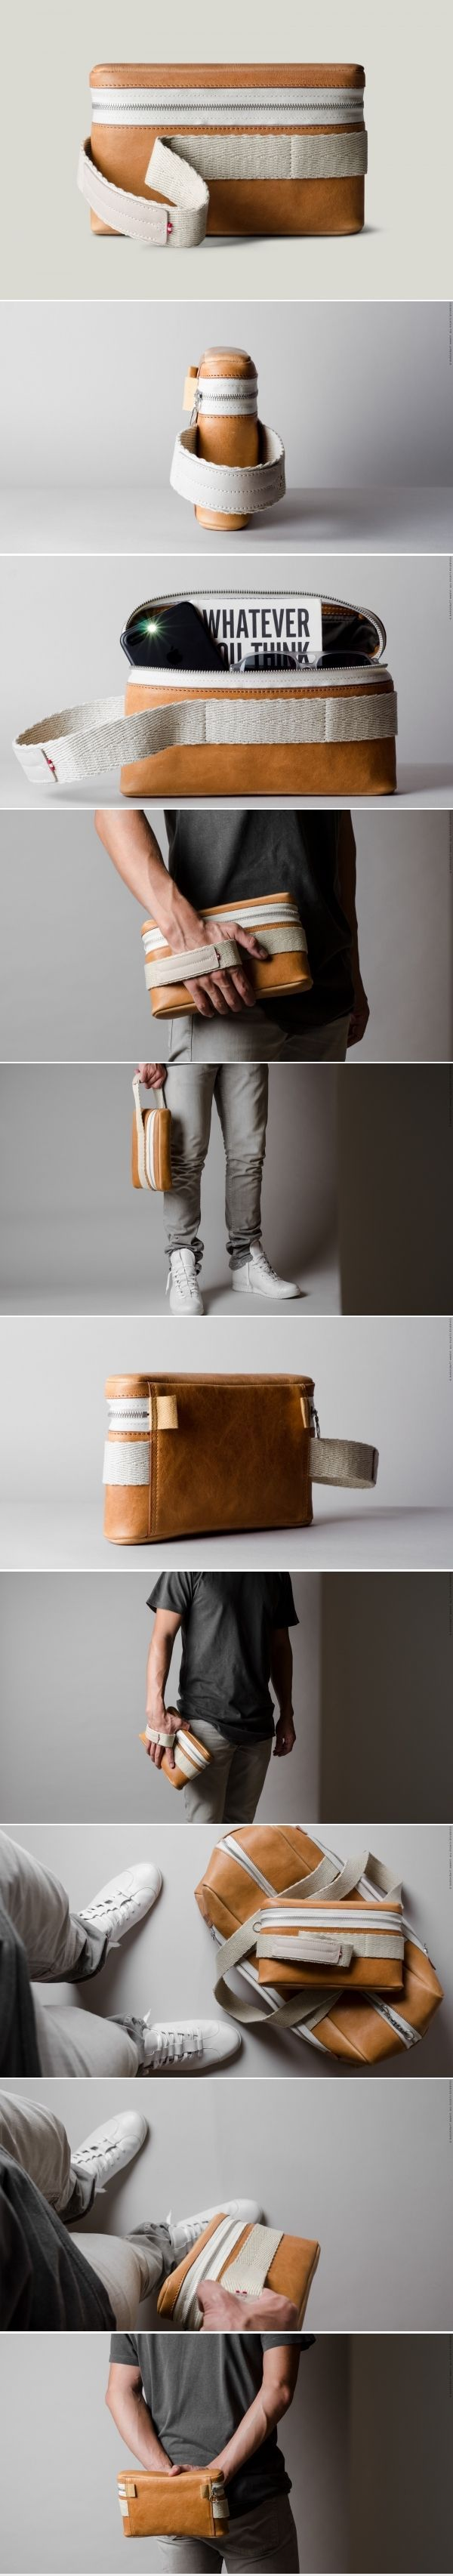 Wrist Pack . Volume Two - women's side bag, side bags for ladies, cheap nice bags *sponsored https://www.pinterest.com/bags_bag/ https://www.pinterest.com/explore/bags/ https://www.pinterest.com/bags_bag/radley-bags/ http://www.tumi.com/c/bag